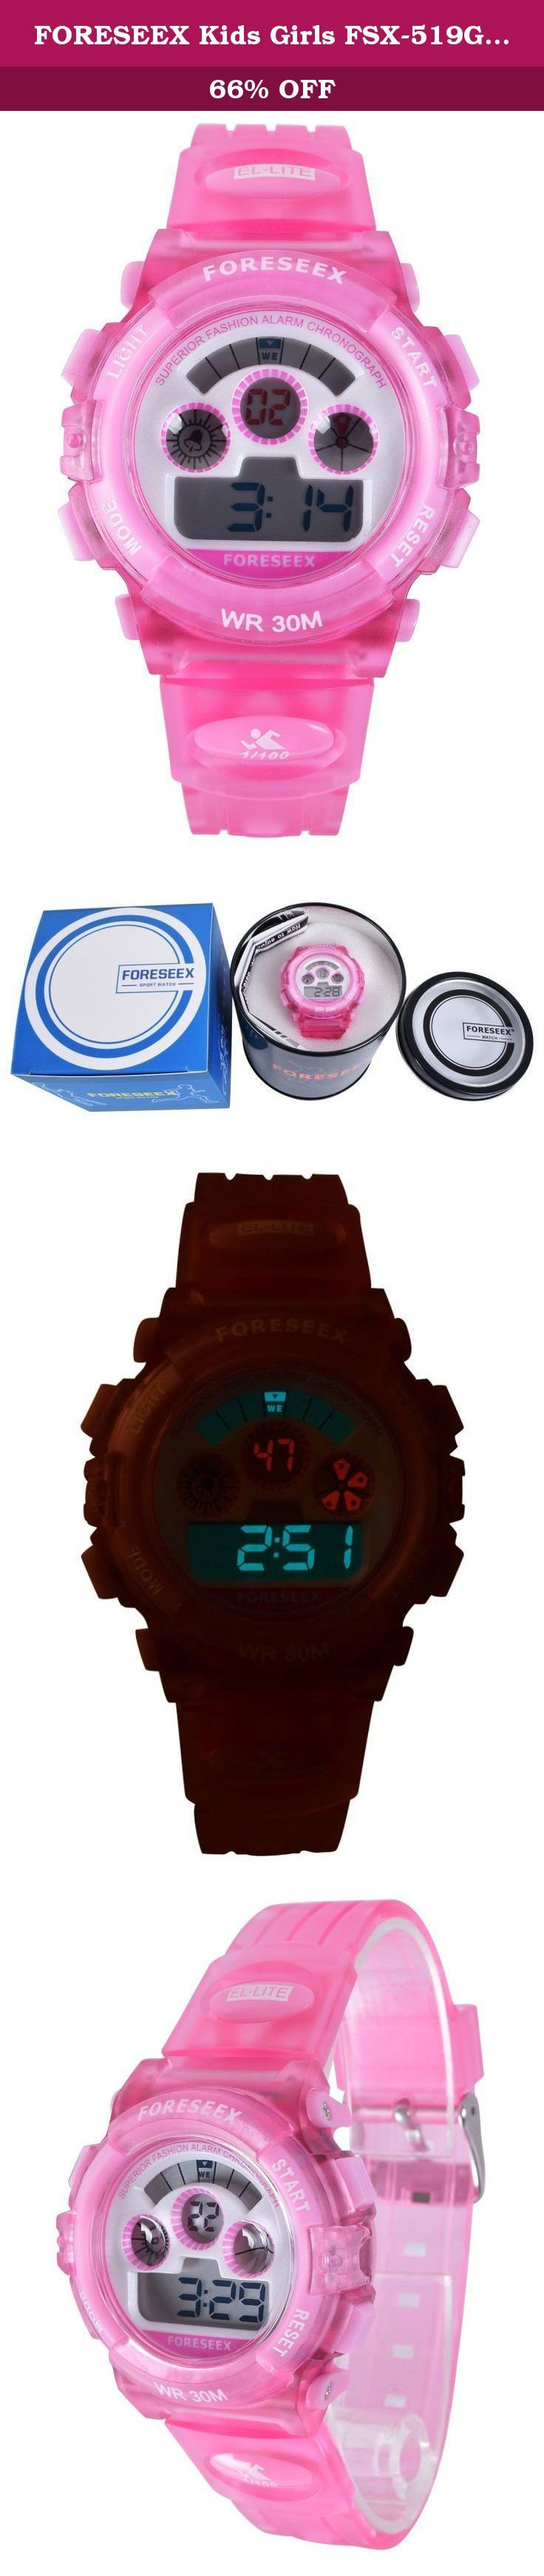 FORESEEX Kids Girls FSX-519G Water Resistant with Back Light Alarm Digital Sports Wrist Pink Watch. A better watch for daily use or teaching kids to tell time If you are looking for a watch for daily use or for your kids, you have found the right watch. The watch is durable, digital display, water resistant and has EL back light, long-last battery. It meets all your needs as a daily use watch. You don't need to take off the watch when washing hands, taking shower or swimming (Just don't...